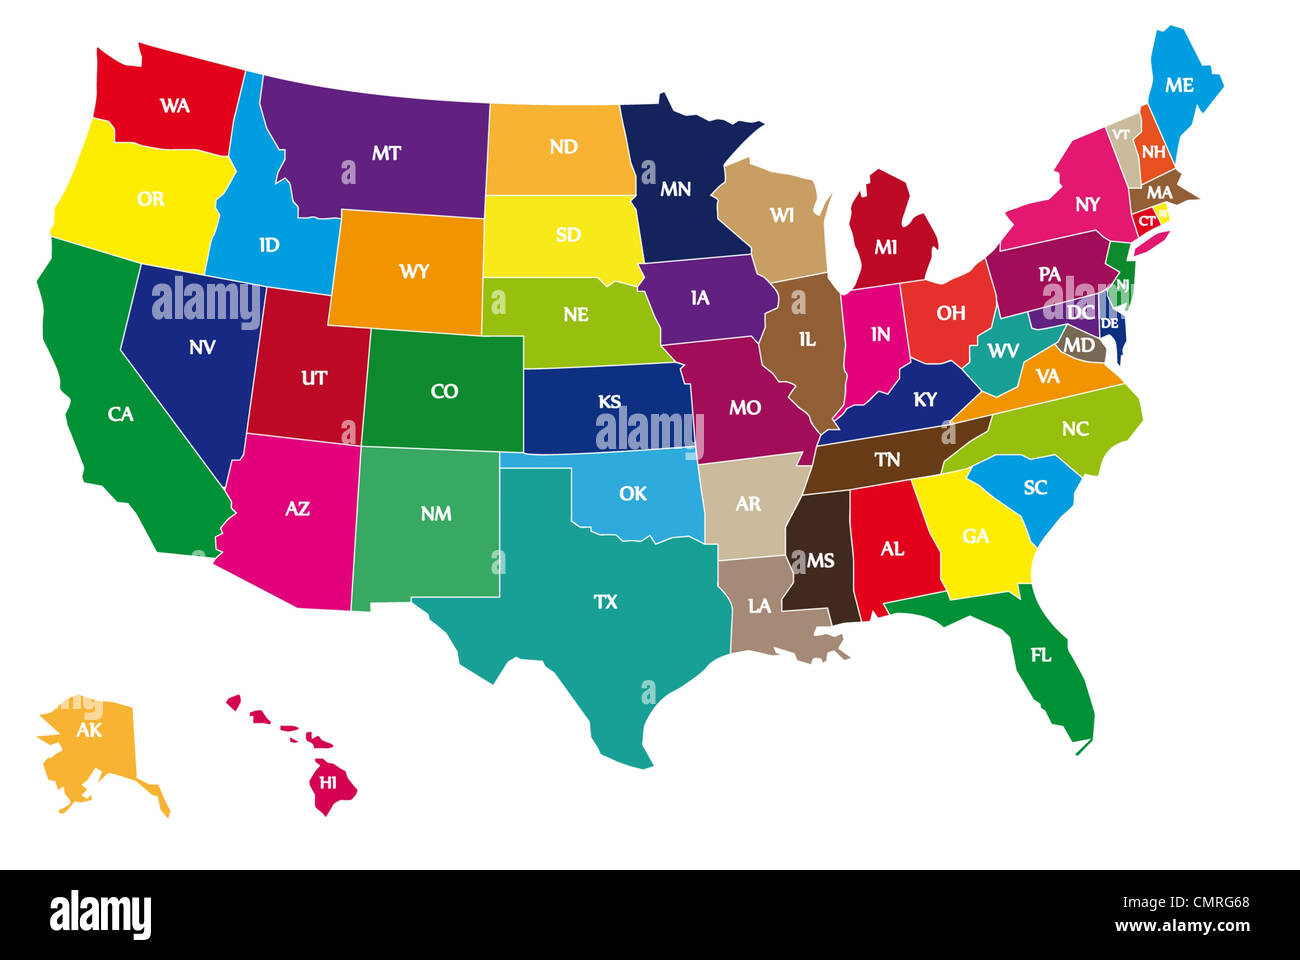 Multicolor Bordering Geographical Map of USA with Bordering ... on map in us, map of usa, delaware usa, rhode island usa, map tx usa, map nw usa, world map usa, map with title, map from mexico, map maine usa, map for us, map se usa, map in india, map sw usa, map los angeles usa, google maps usa, map in europe, map of missouri and bordering states, map or usa, map af usa,